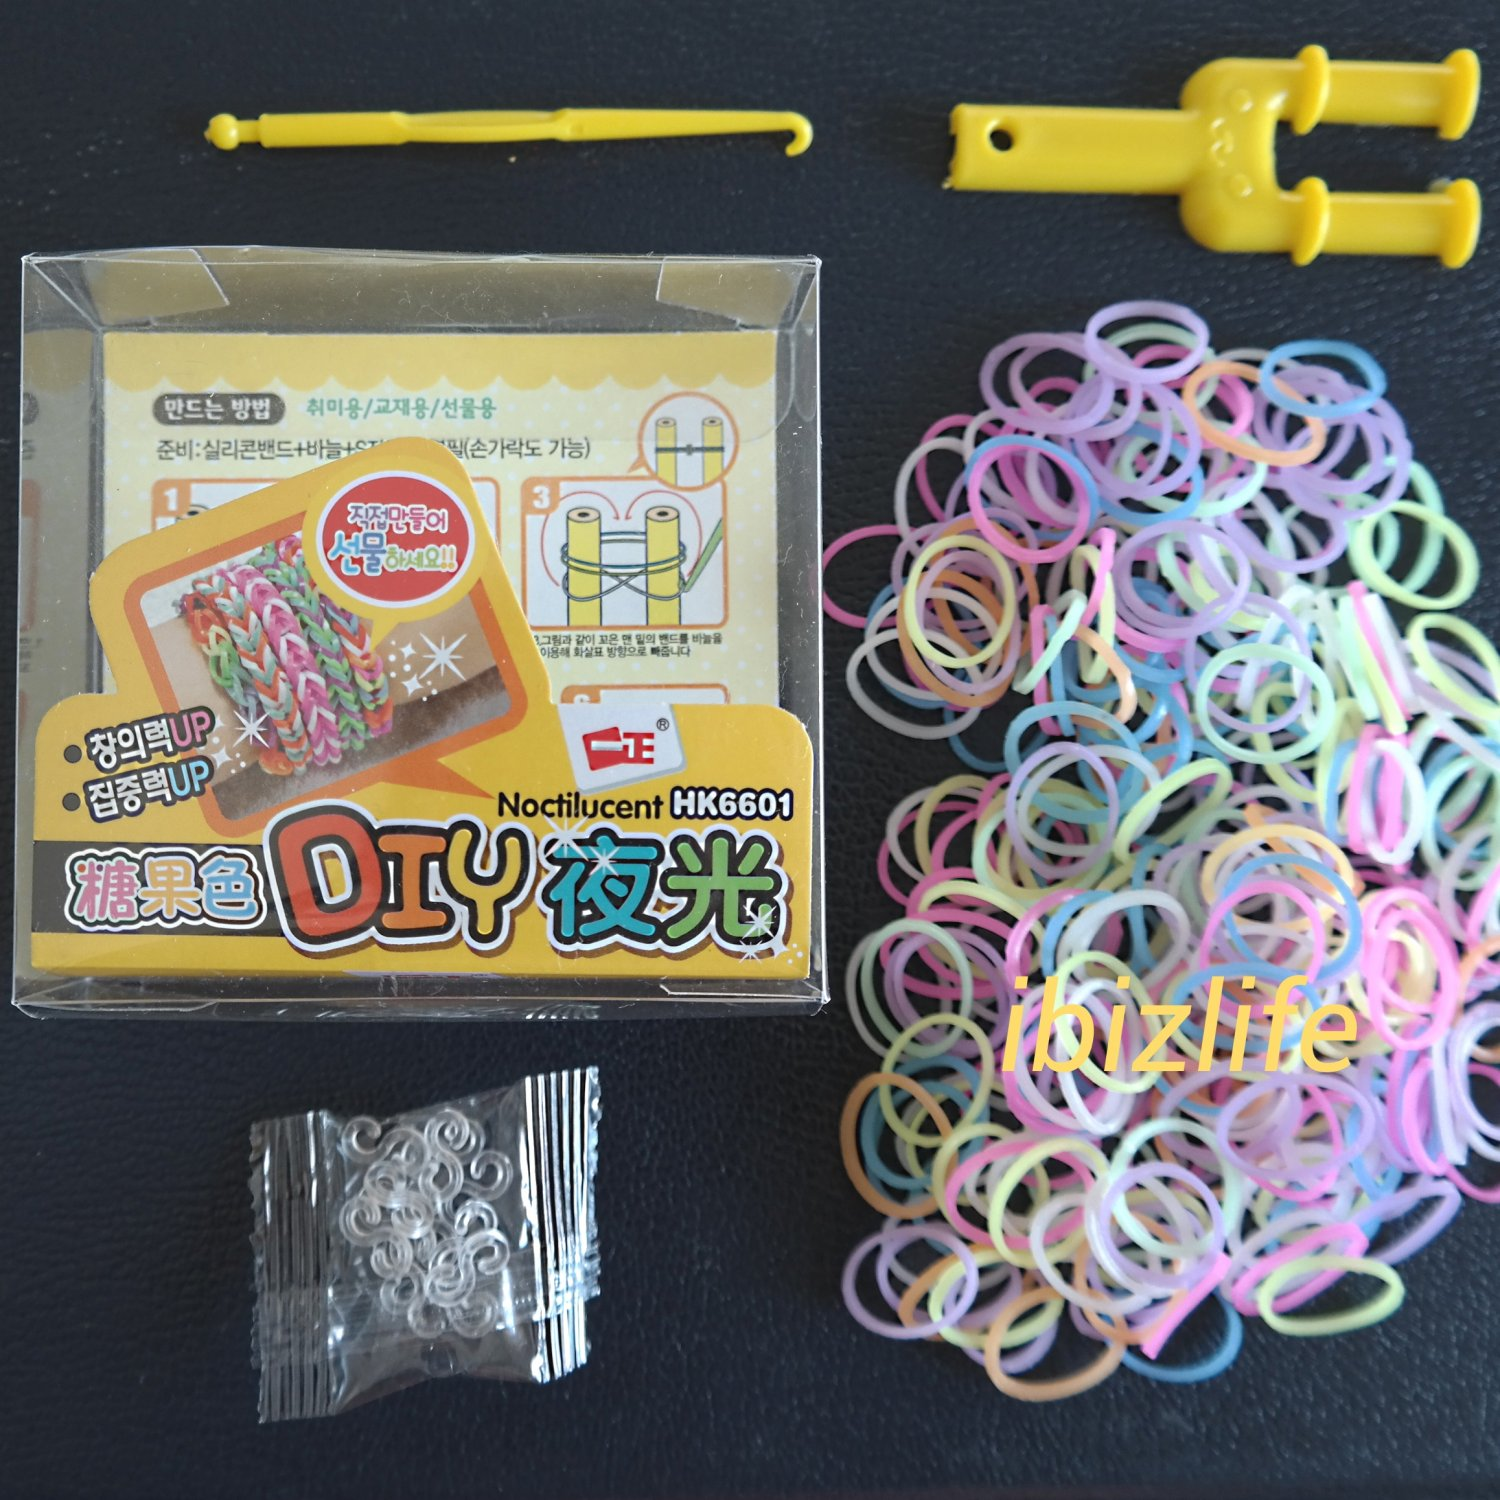 RAINBOW LOOM RUBBER BAND Kits with Noctilucent (Grow in the dark) bands (RL07)